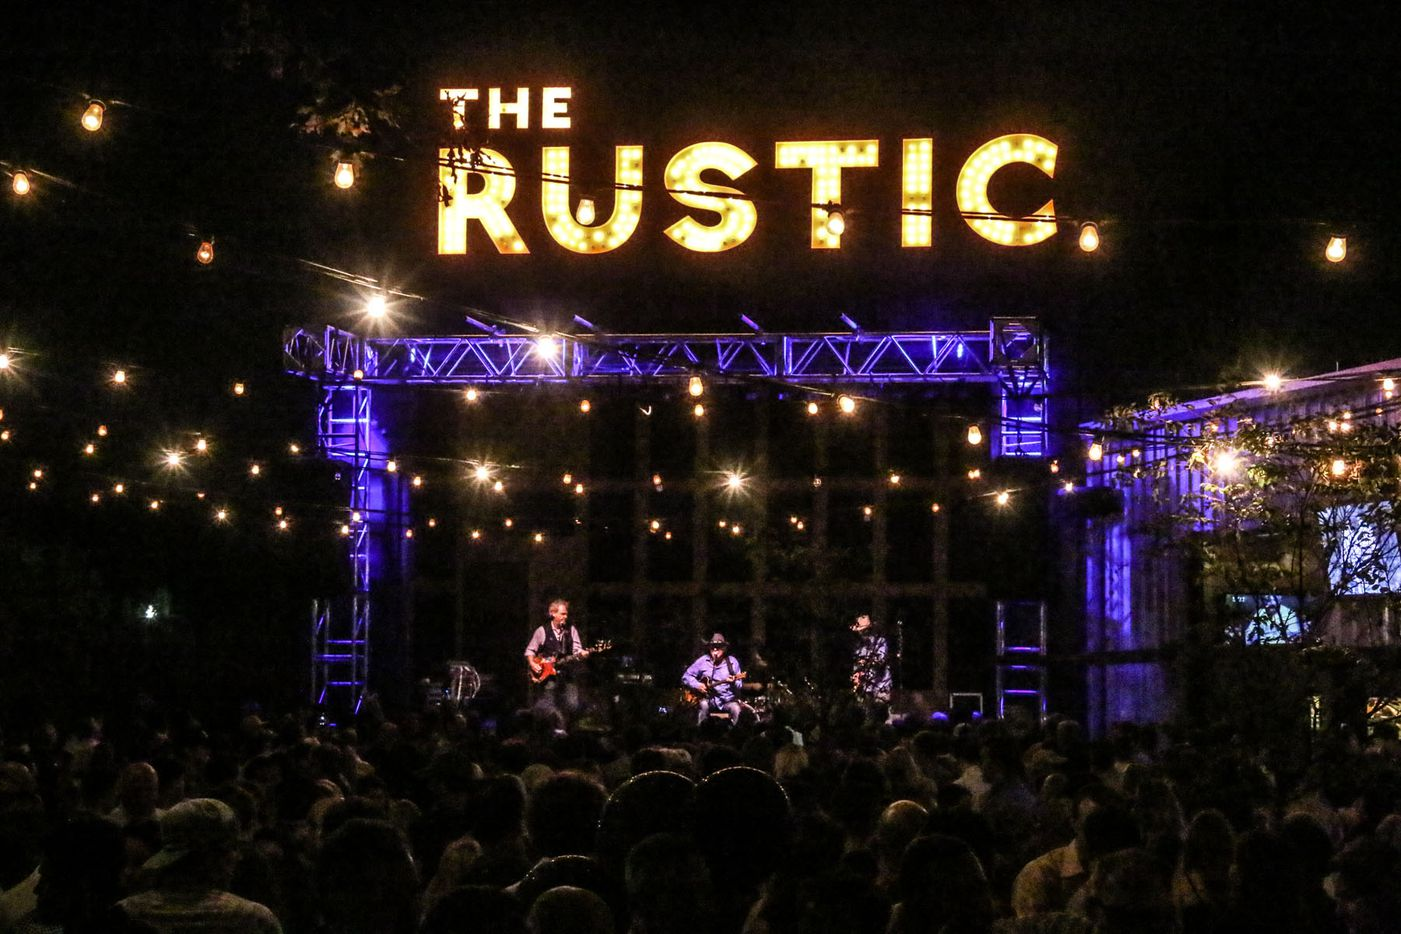 Jerry Jeff Walker performed at The Rustic in Uptown during Texas OU weekend on October 9, 2015.